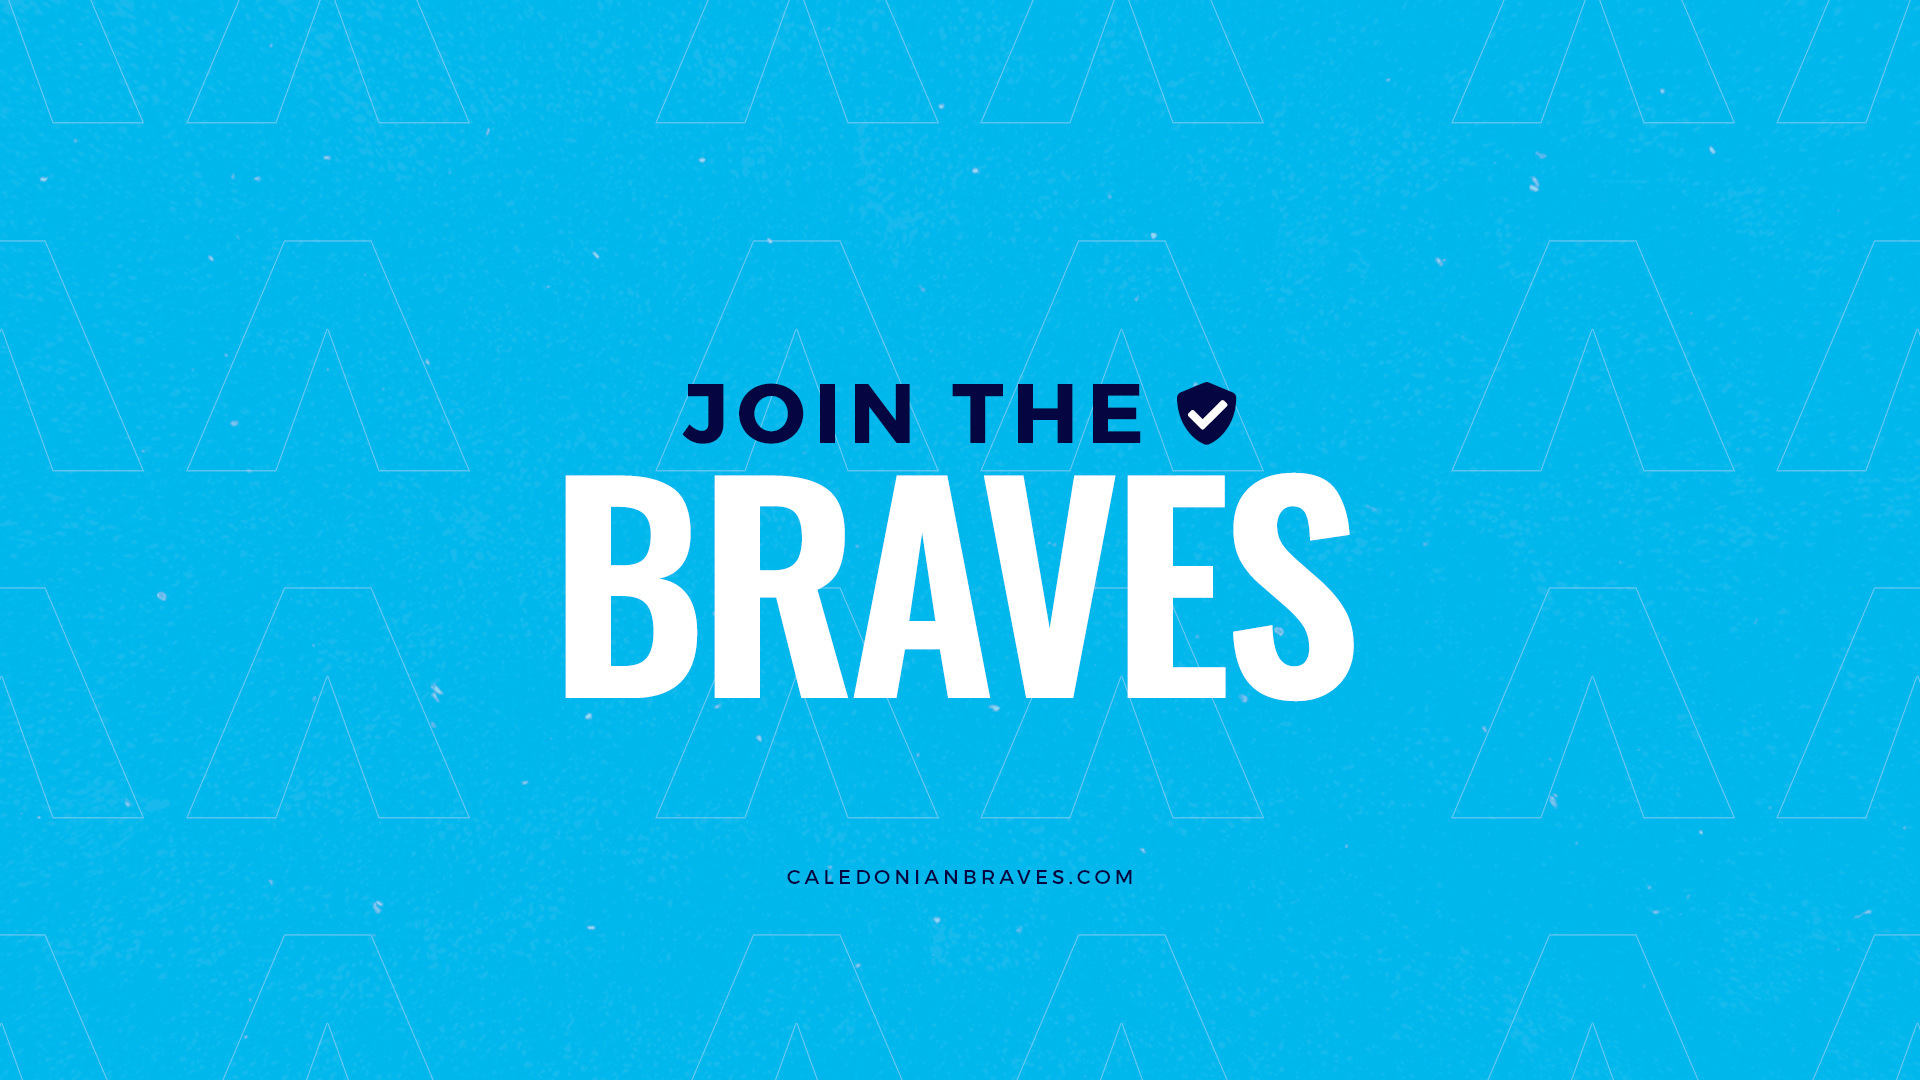 Join the Braves